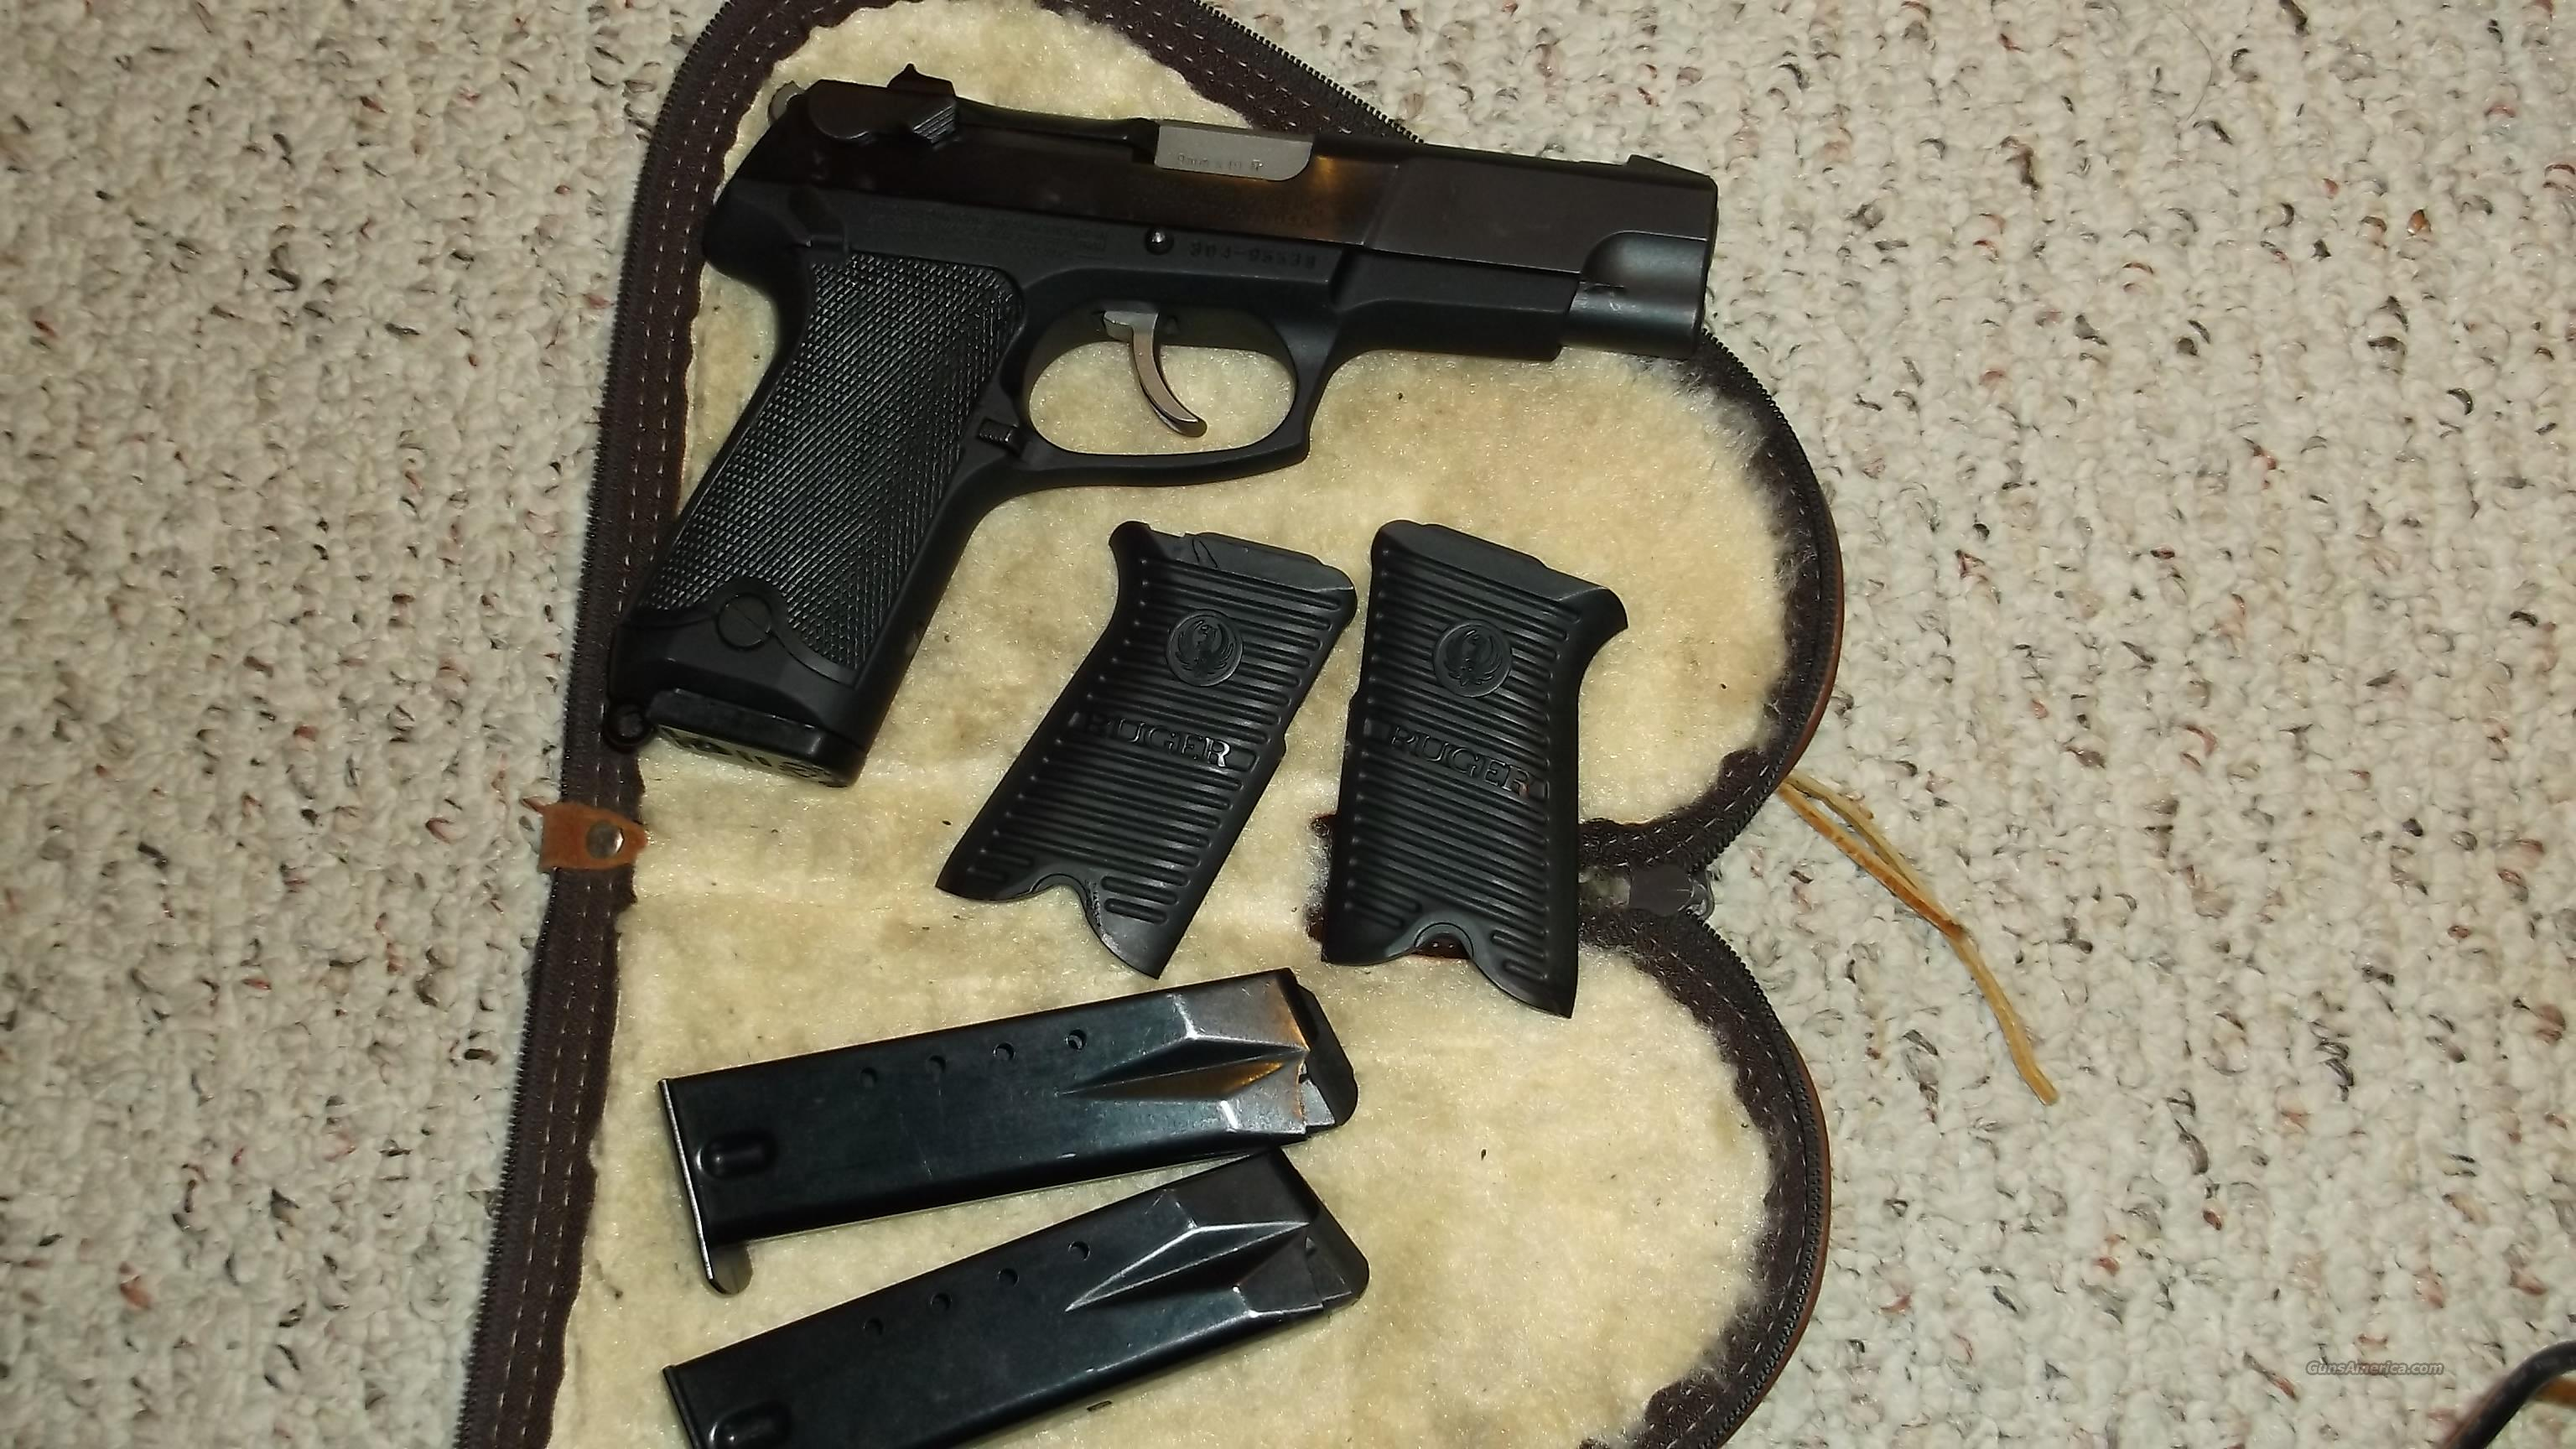 RUGER P89 9MM FREE S/H 3 16RD MAGS  Guns > Pistols > Ruger Semi-Auto Pistols > P-Series